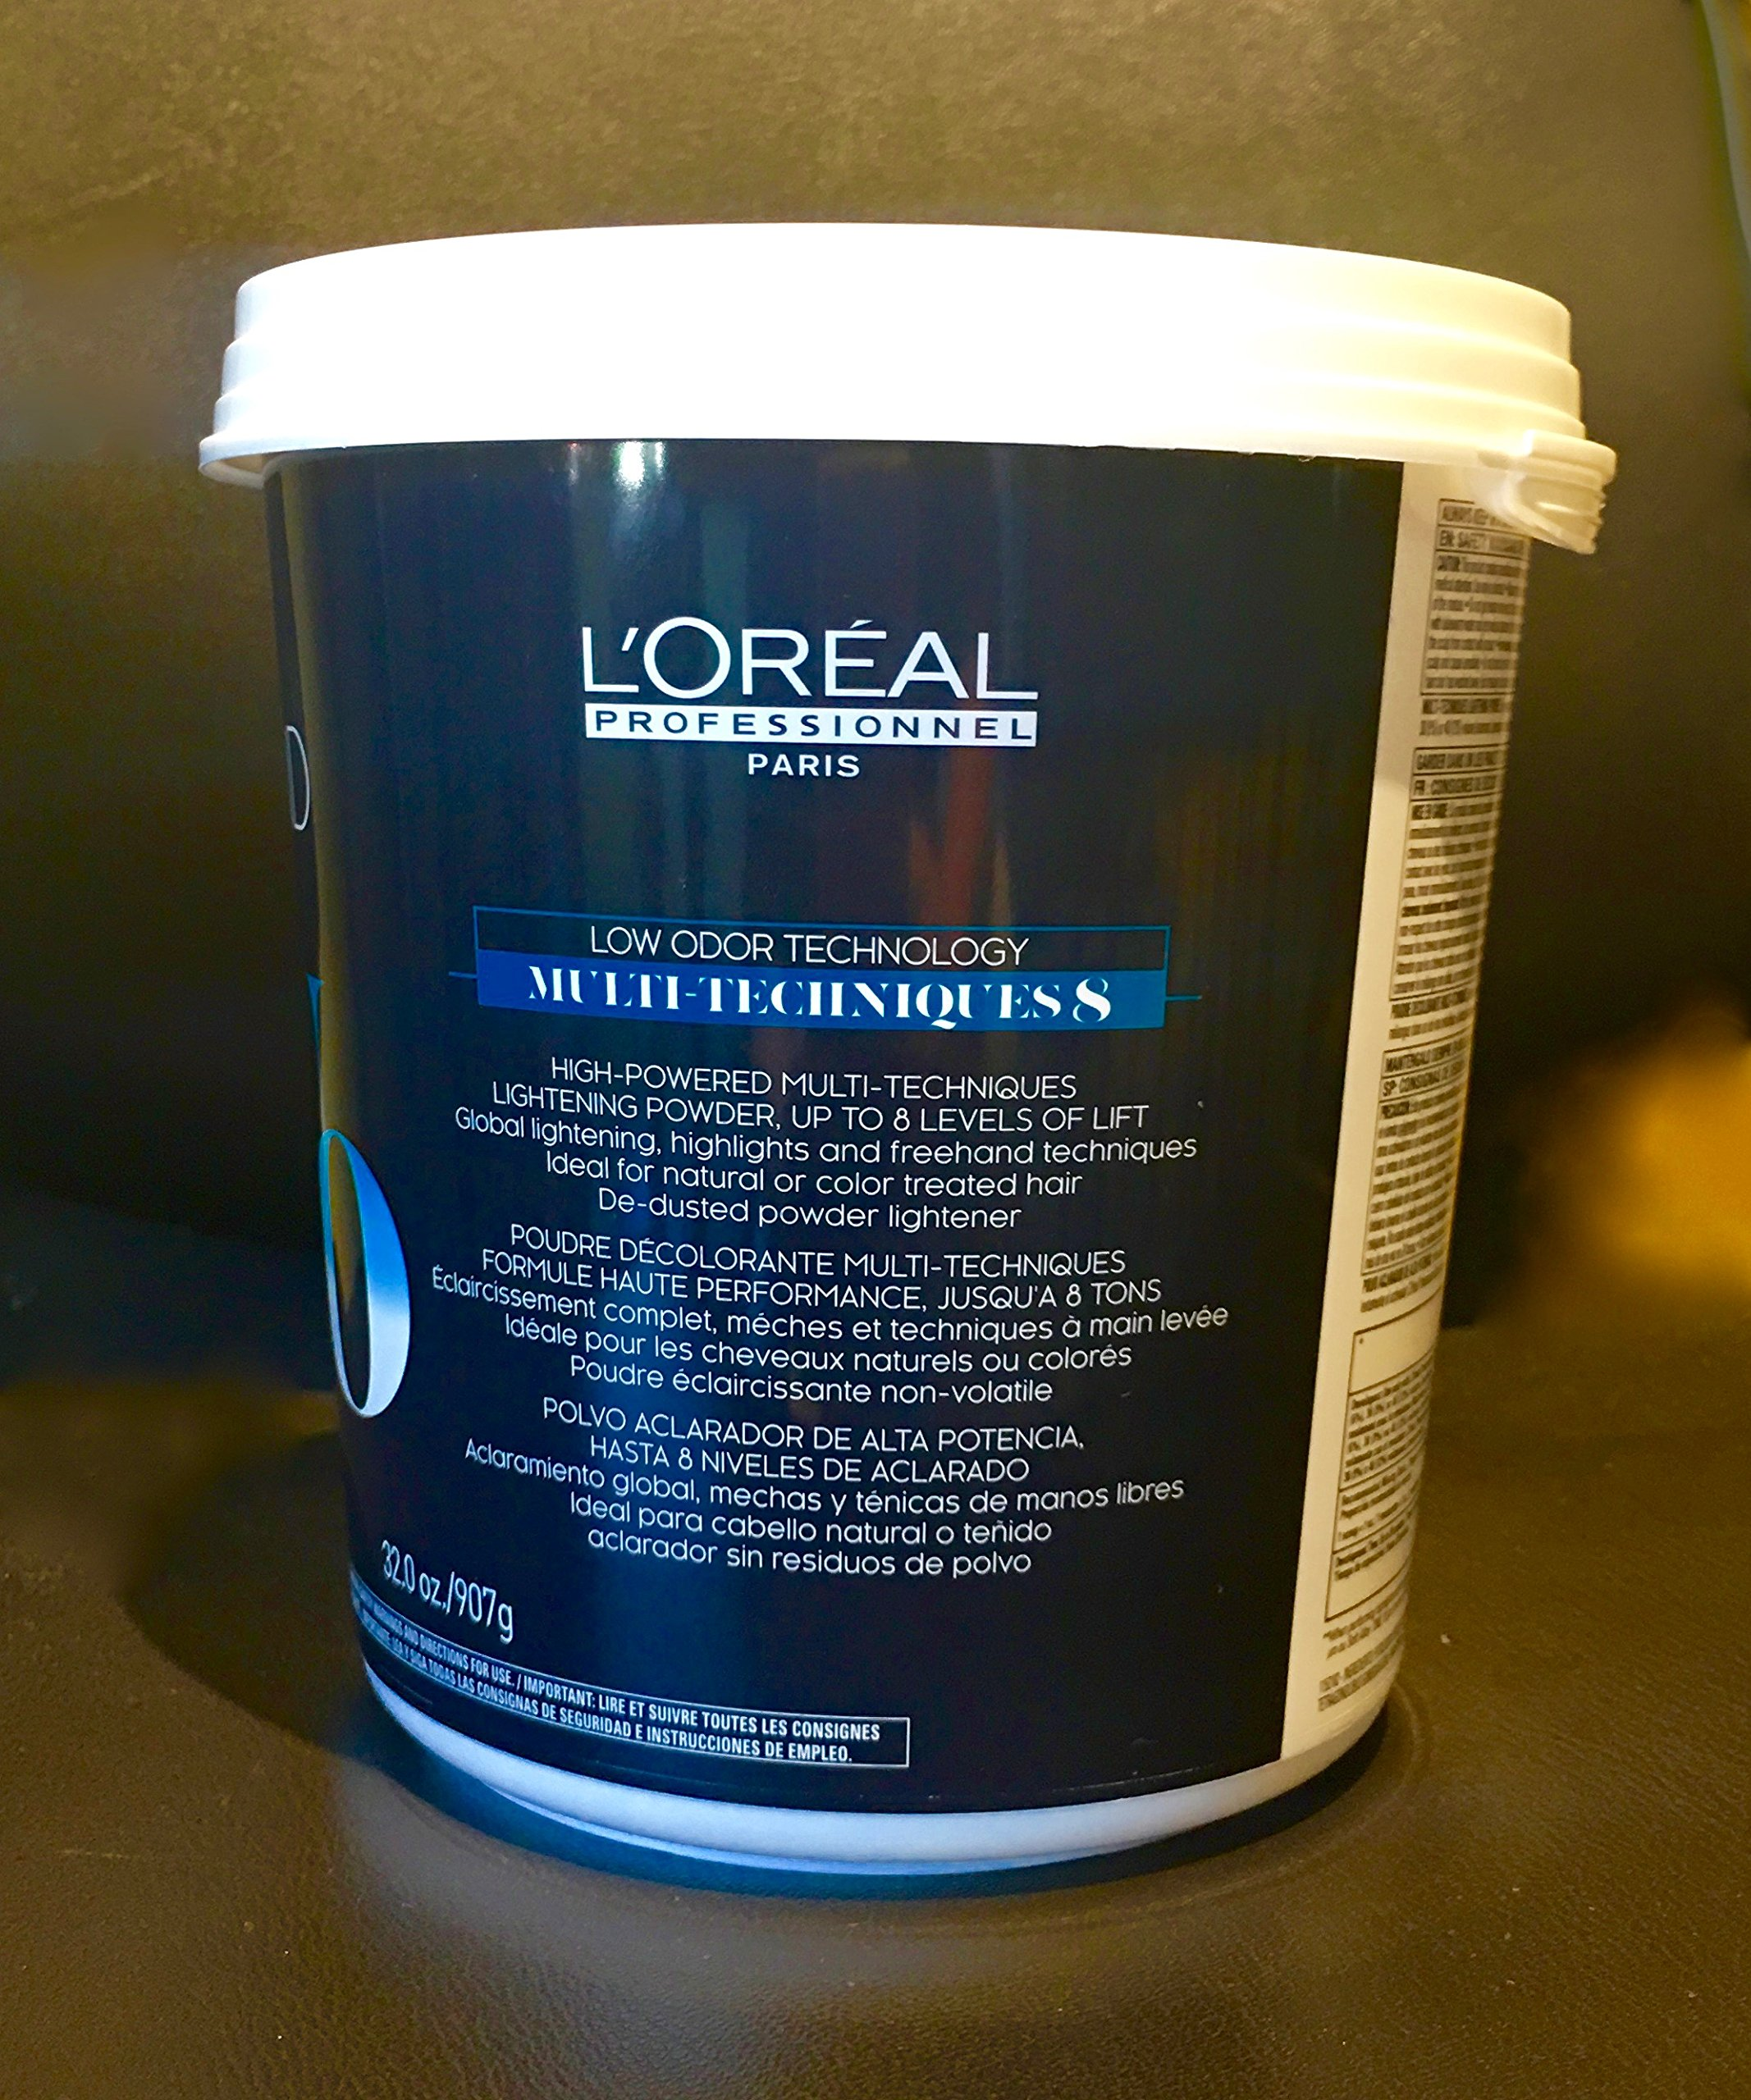 L'Oreal Professional Blond Studio Multi-Techniques Powder, 32 oz by Blond studio (Image #2)